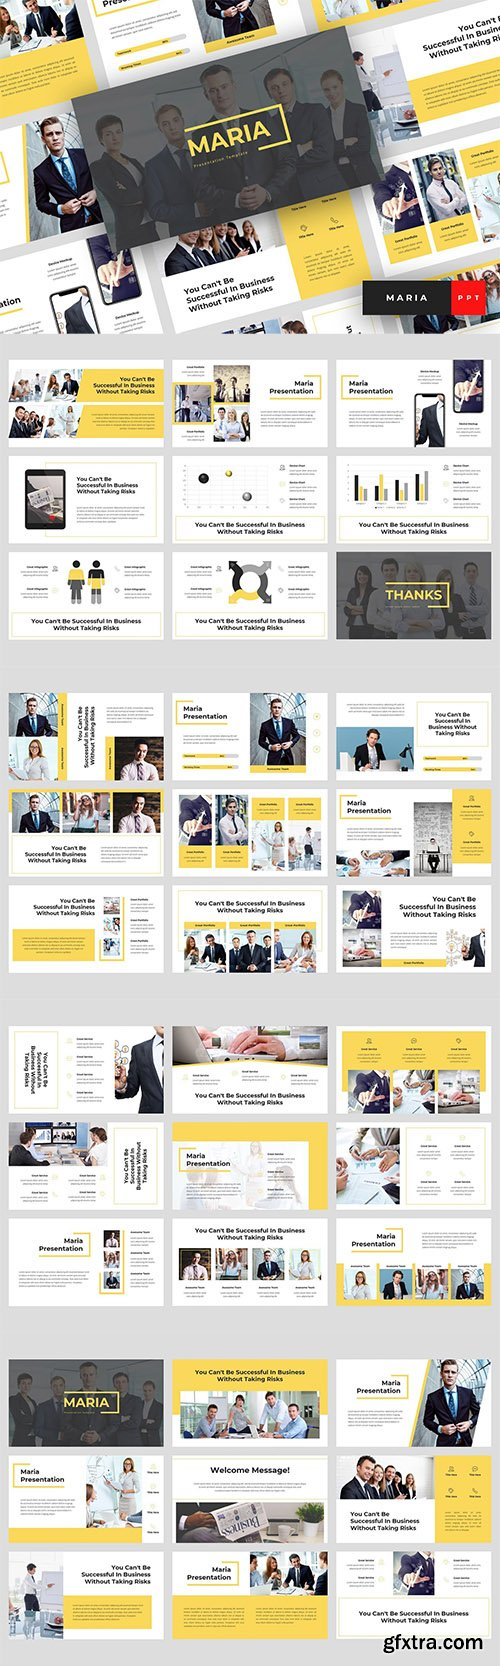 Maria - Pitch Deck Powerpoint Keynote and Google Slides Template